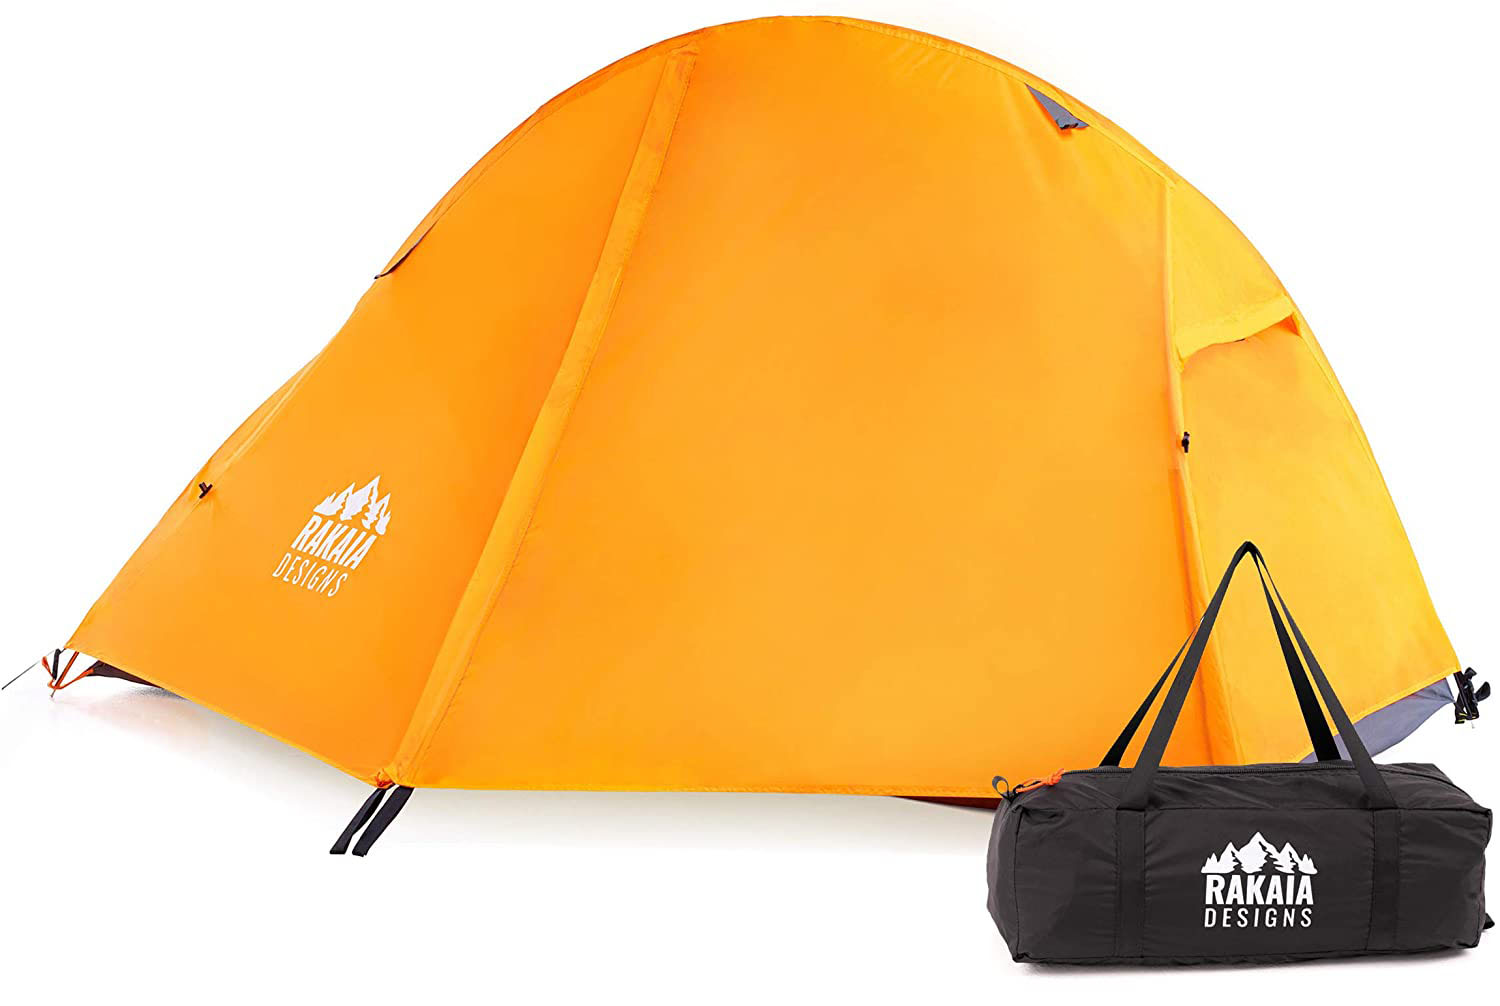 Rakaia Designs Lightweight Backpacking Tent